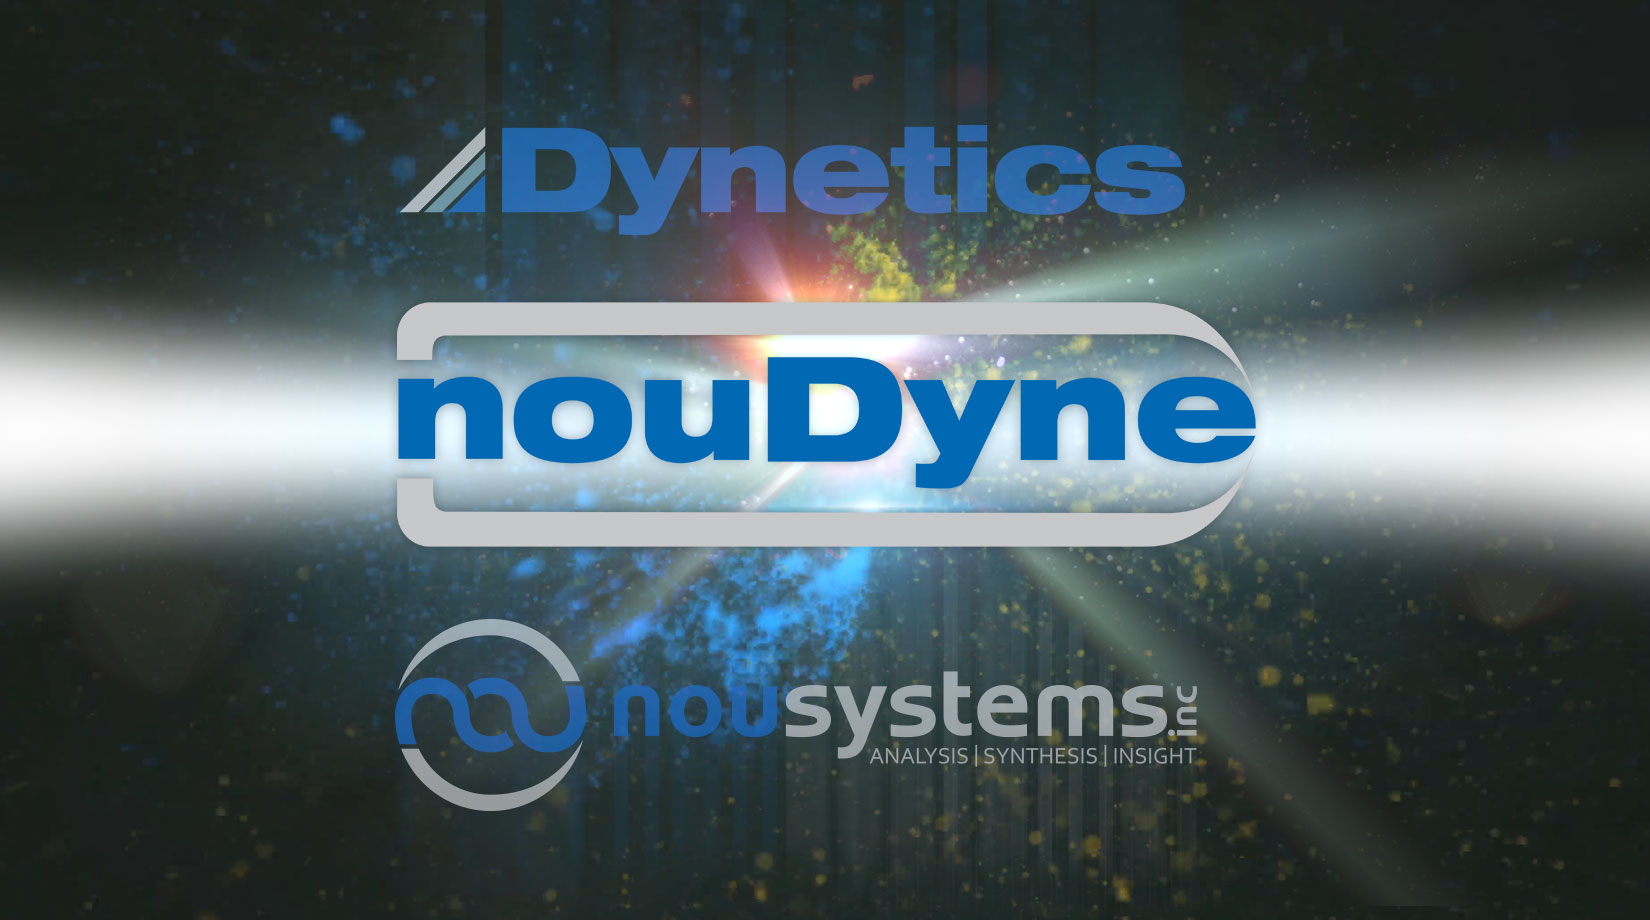 nouSystems and Dynetics to launch nouDyne – a range radar modernization solution banner image